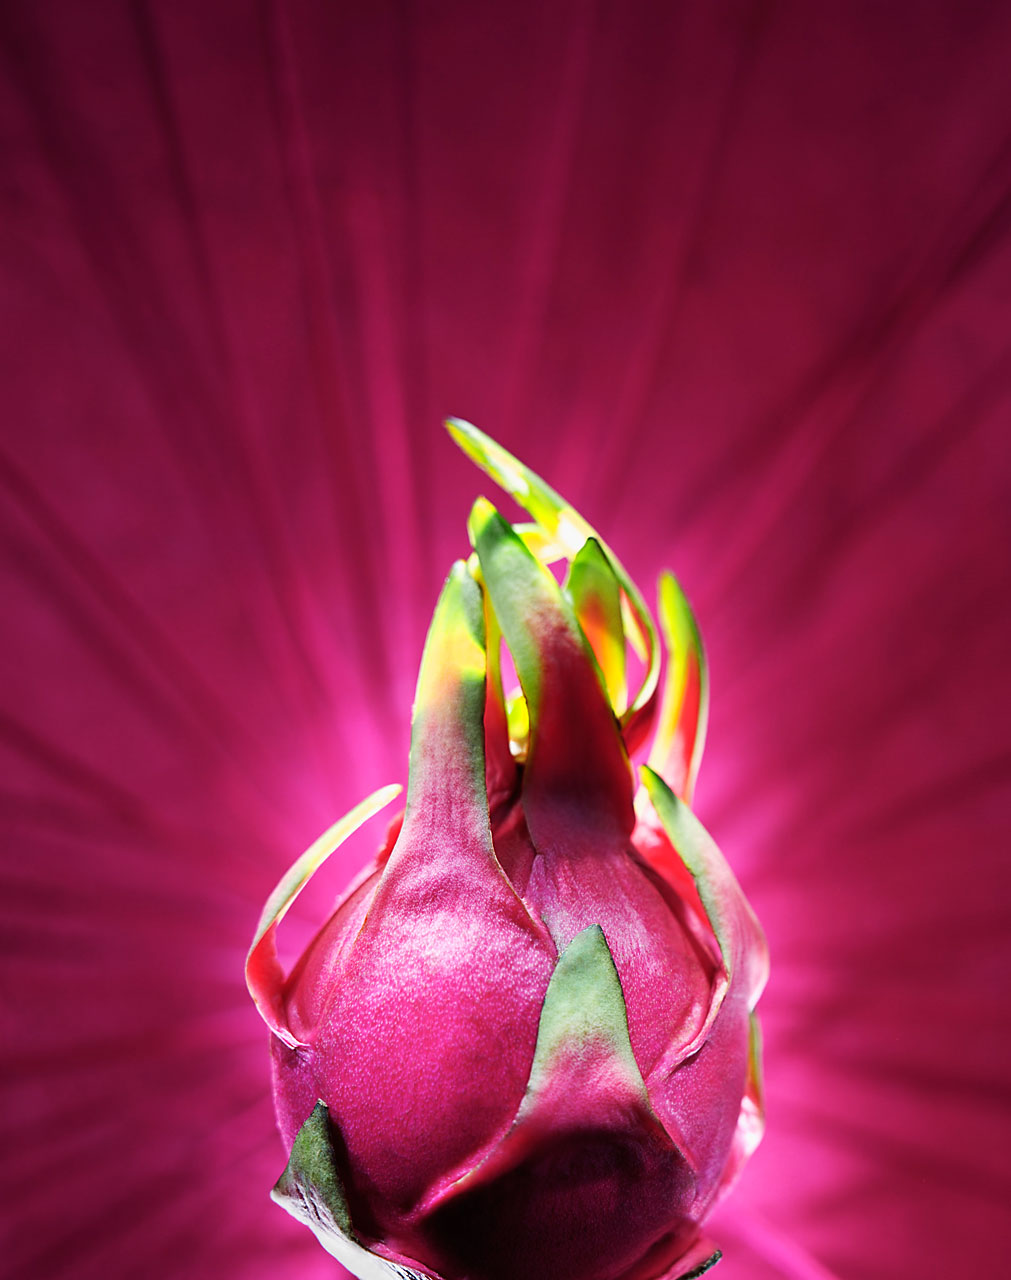 Sabine-Scheer-food-photograpy-pitahaya-dragon-fruit